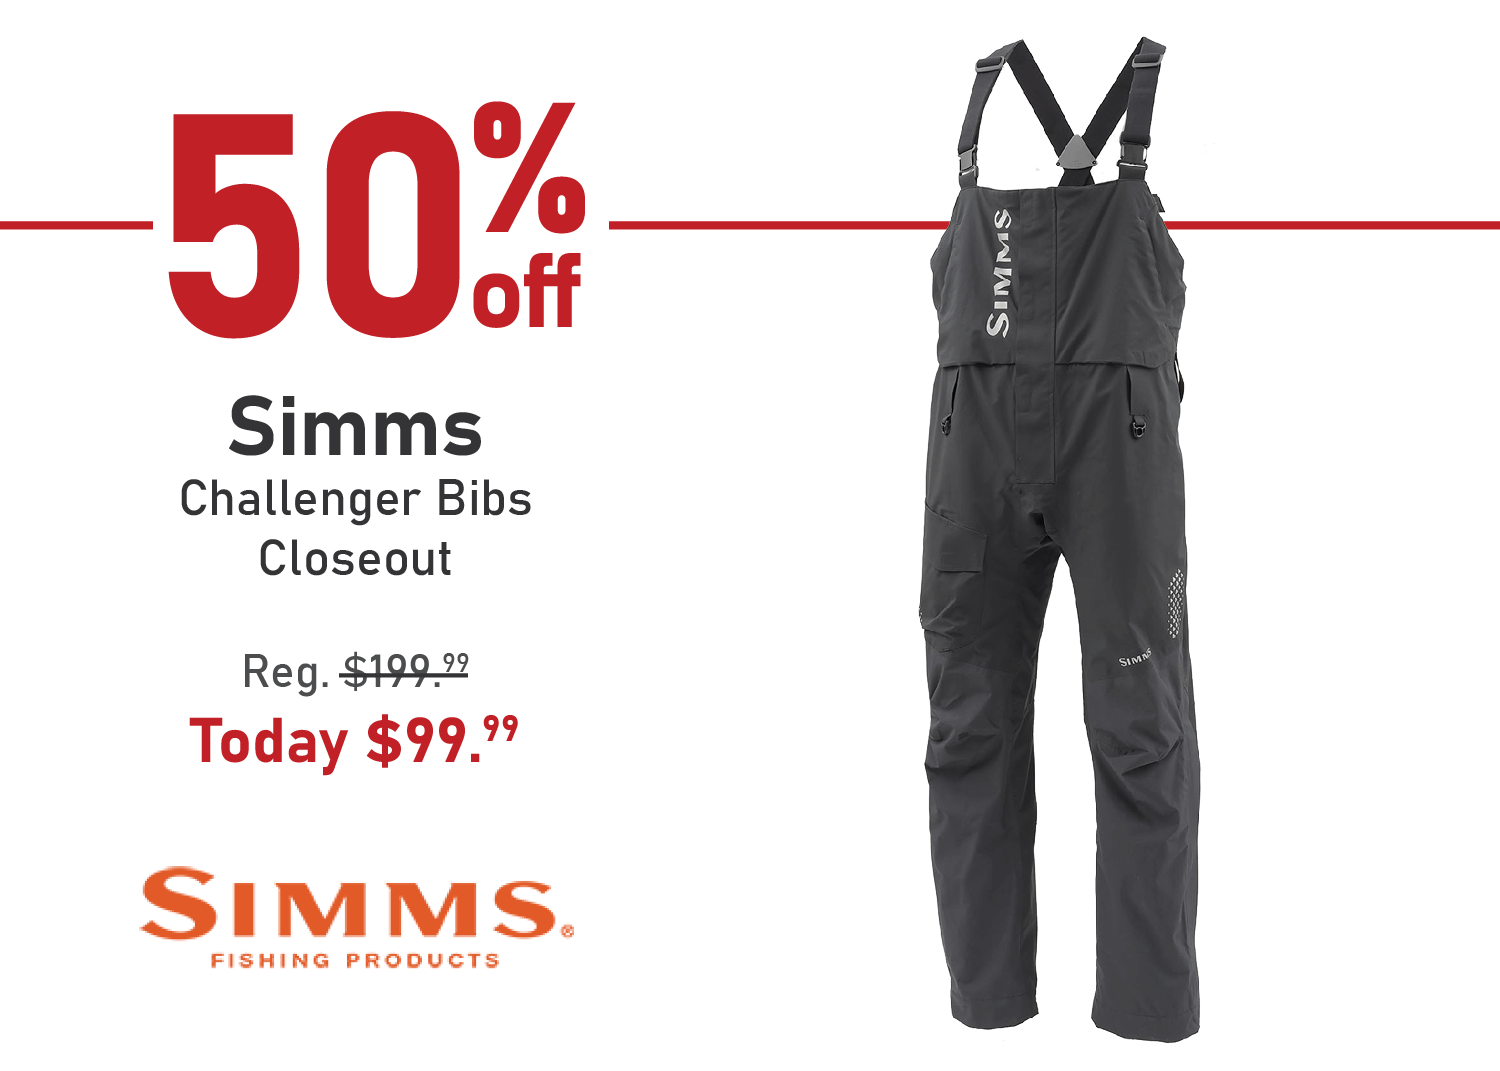 Take 50% off the Simms Challenger Bibs - Closeout